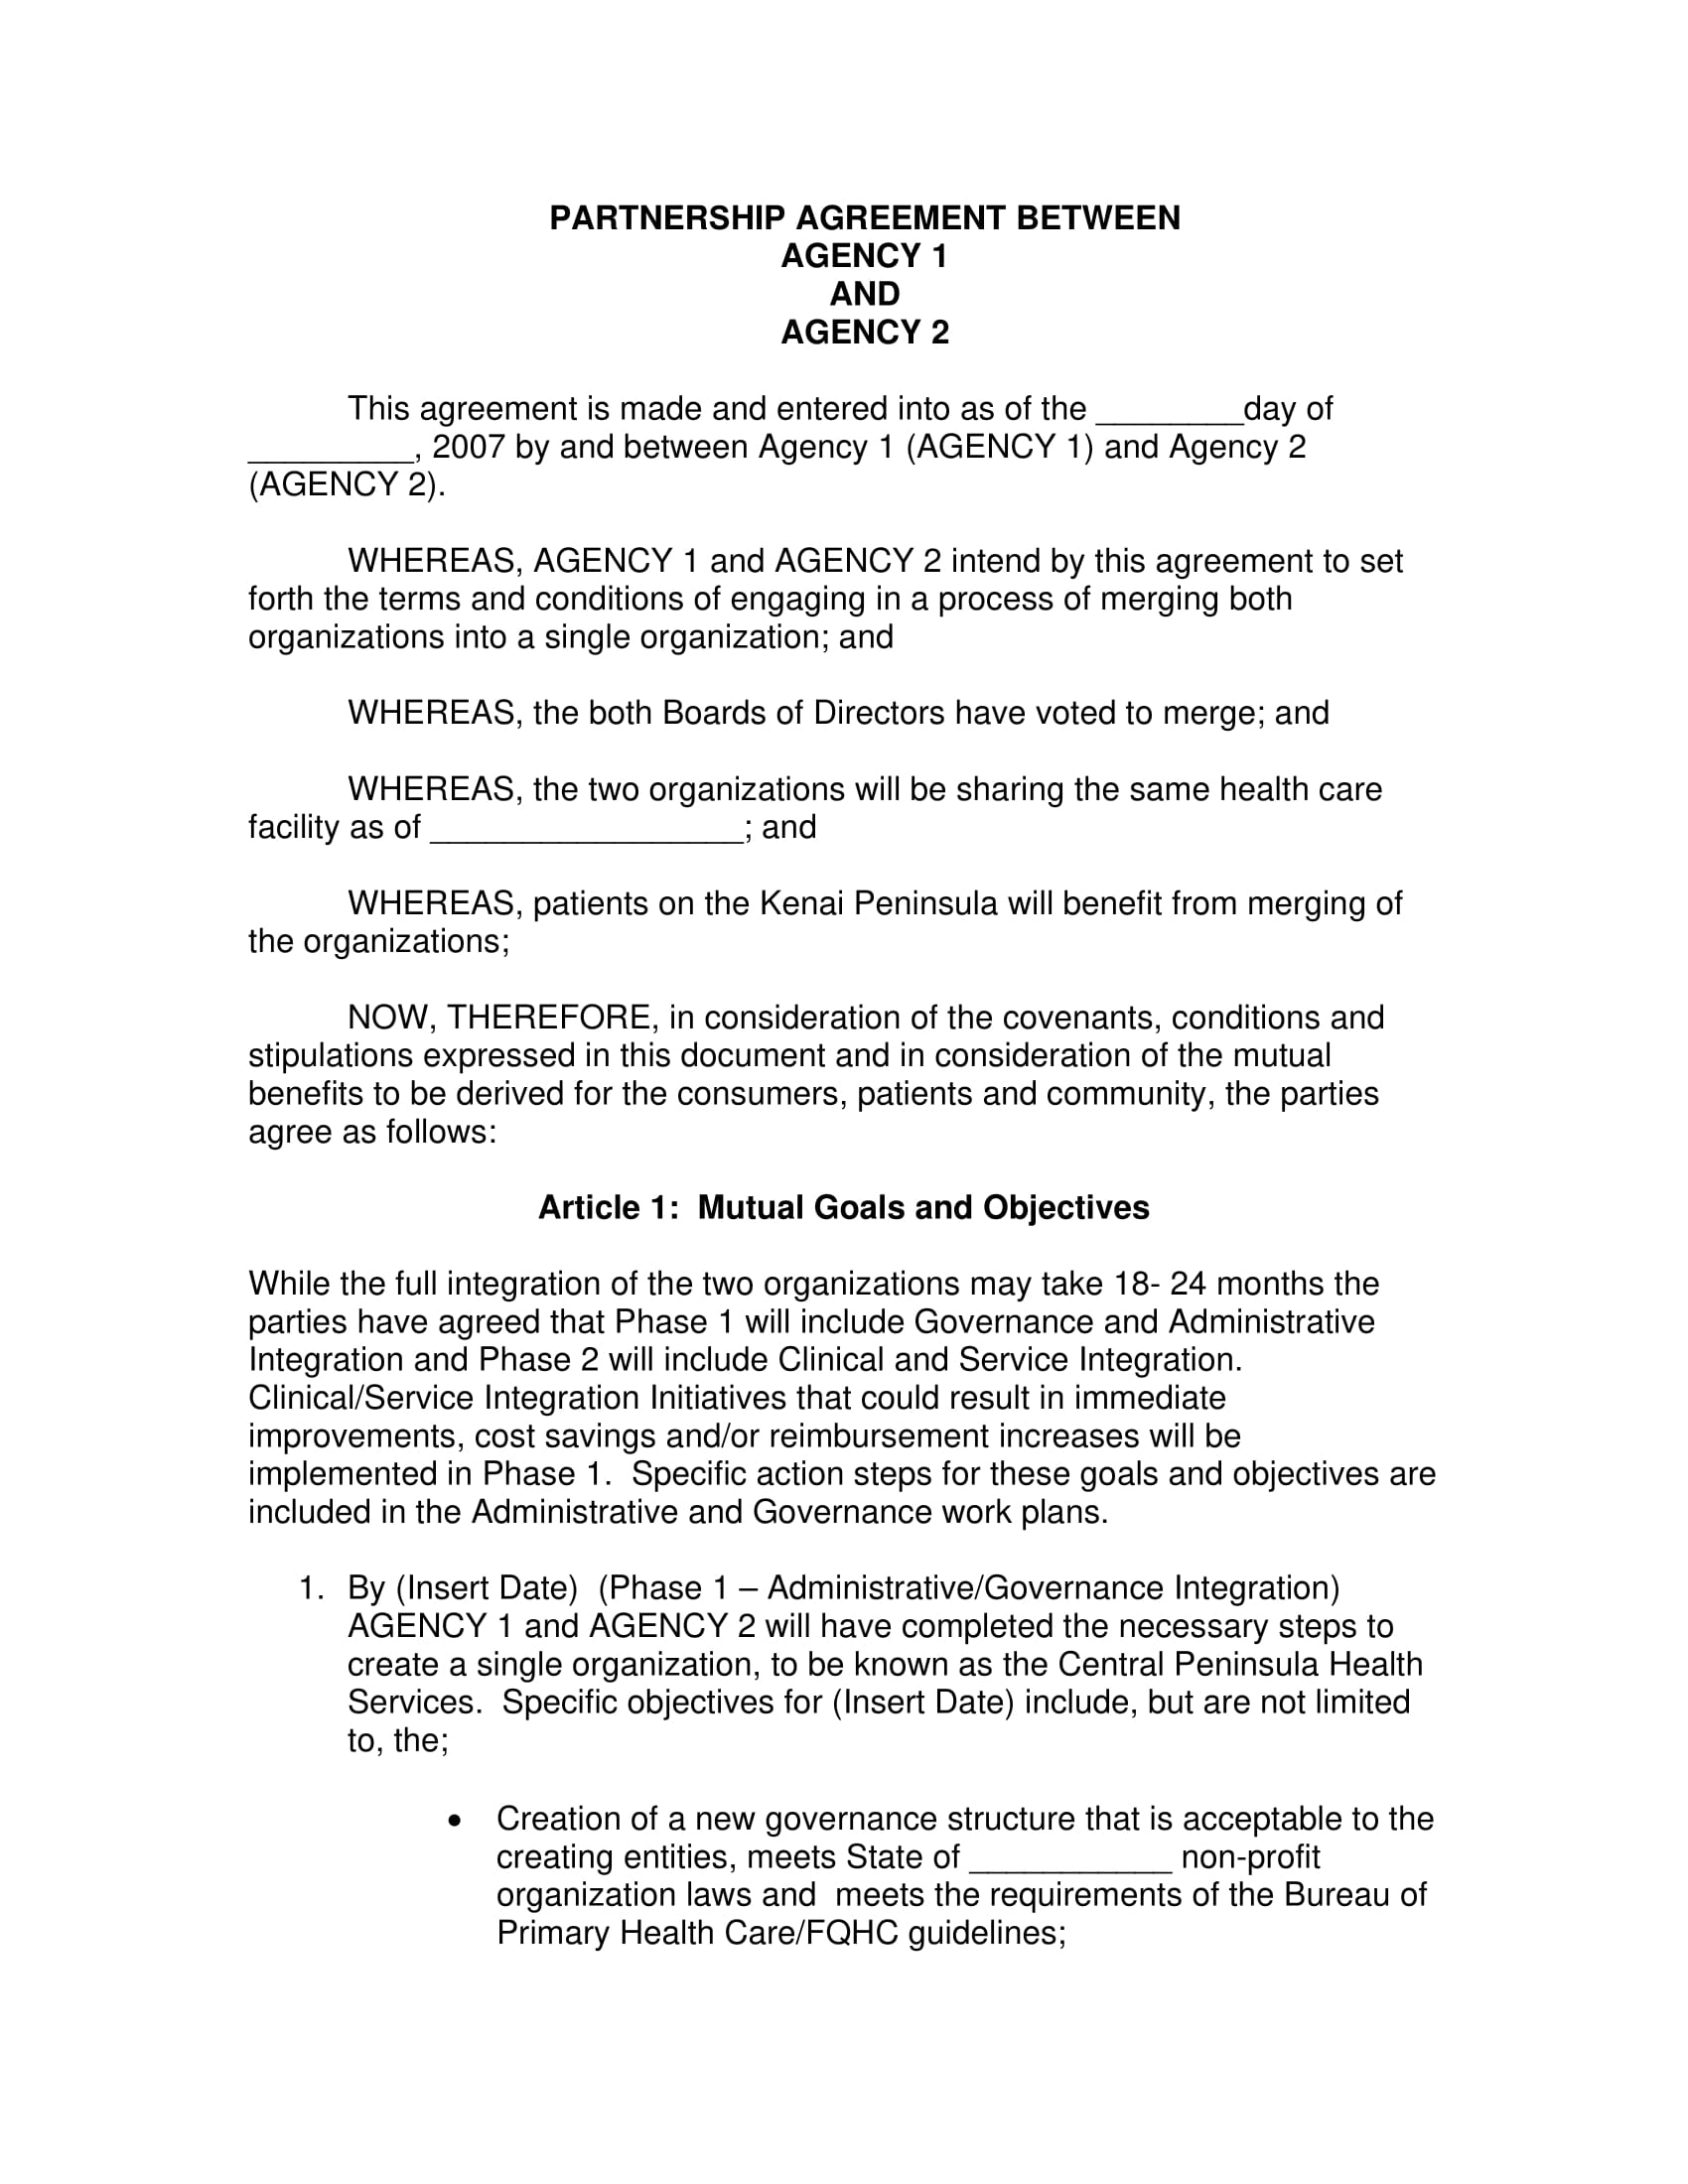 agency partnership agreement example2